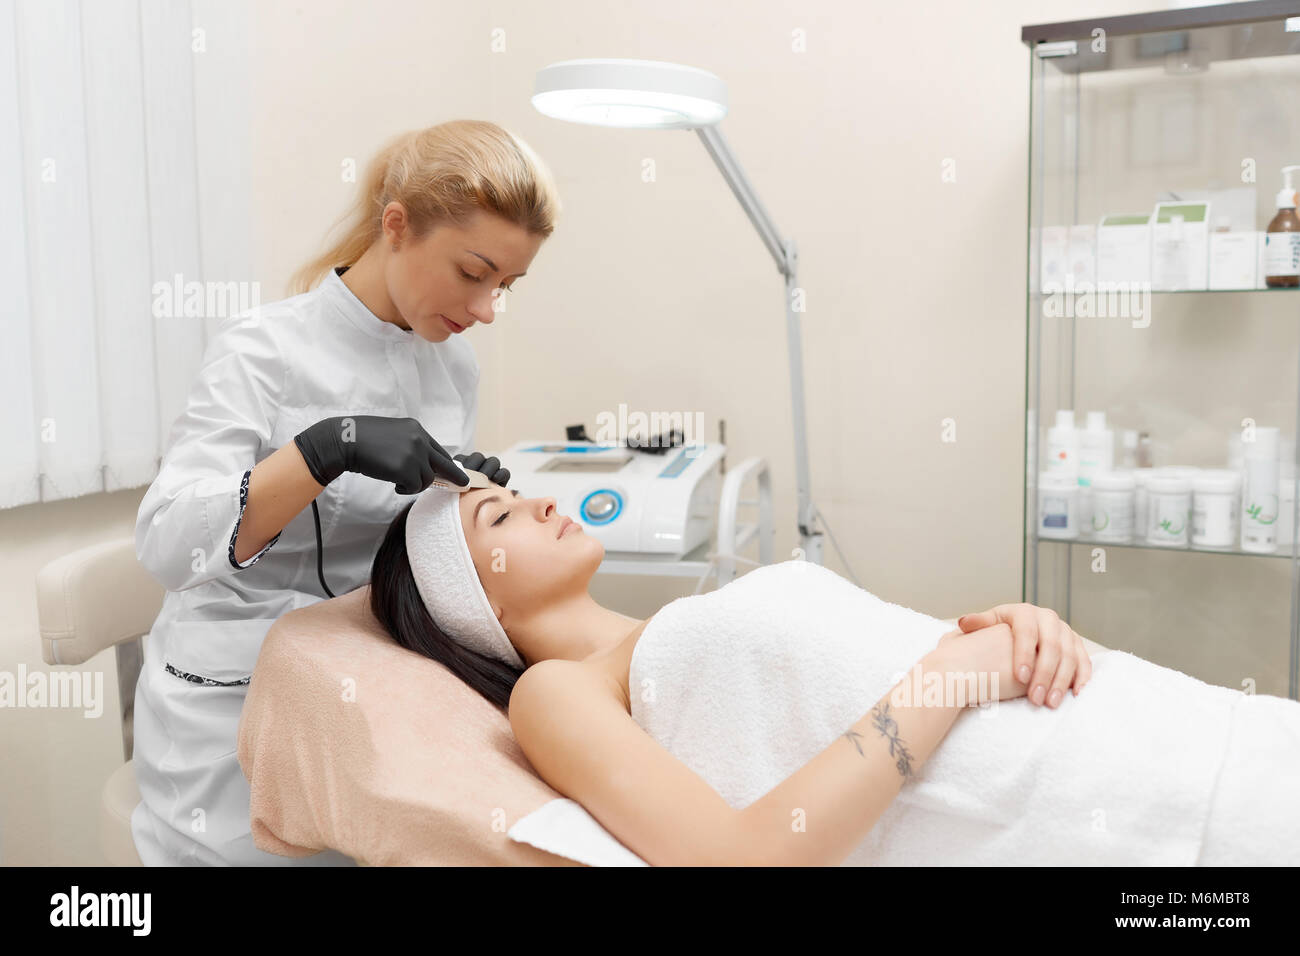 Hardware cosmetology. Cosmetologist doing procedure of ultrasonic cleaning of face. Young woman getting ultrasonic - Stock Image